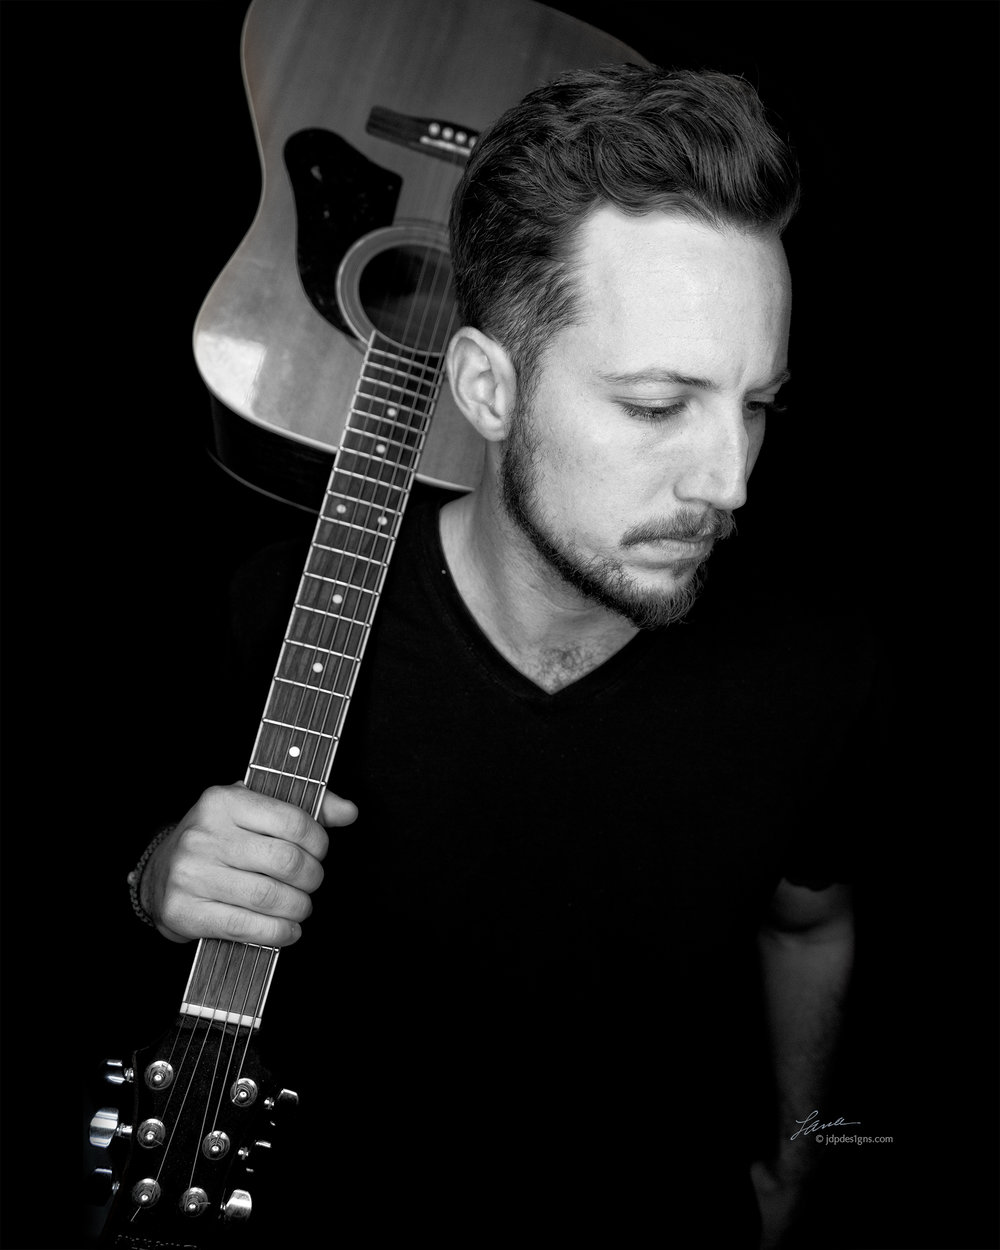 Jake Guitar 1 bw.jpg